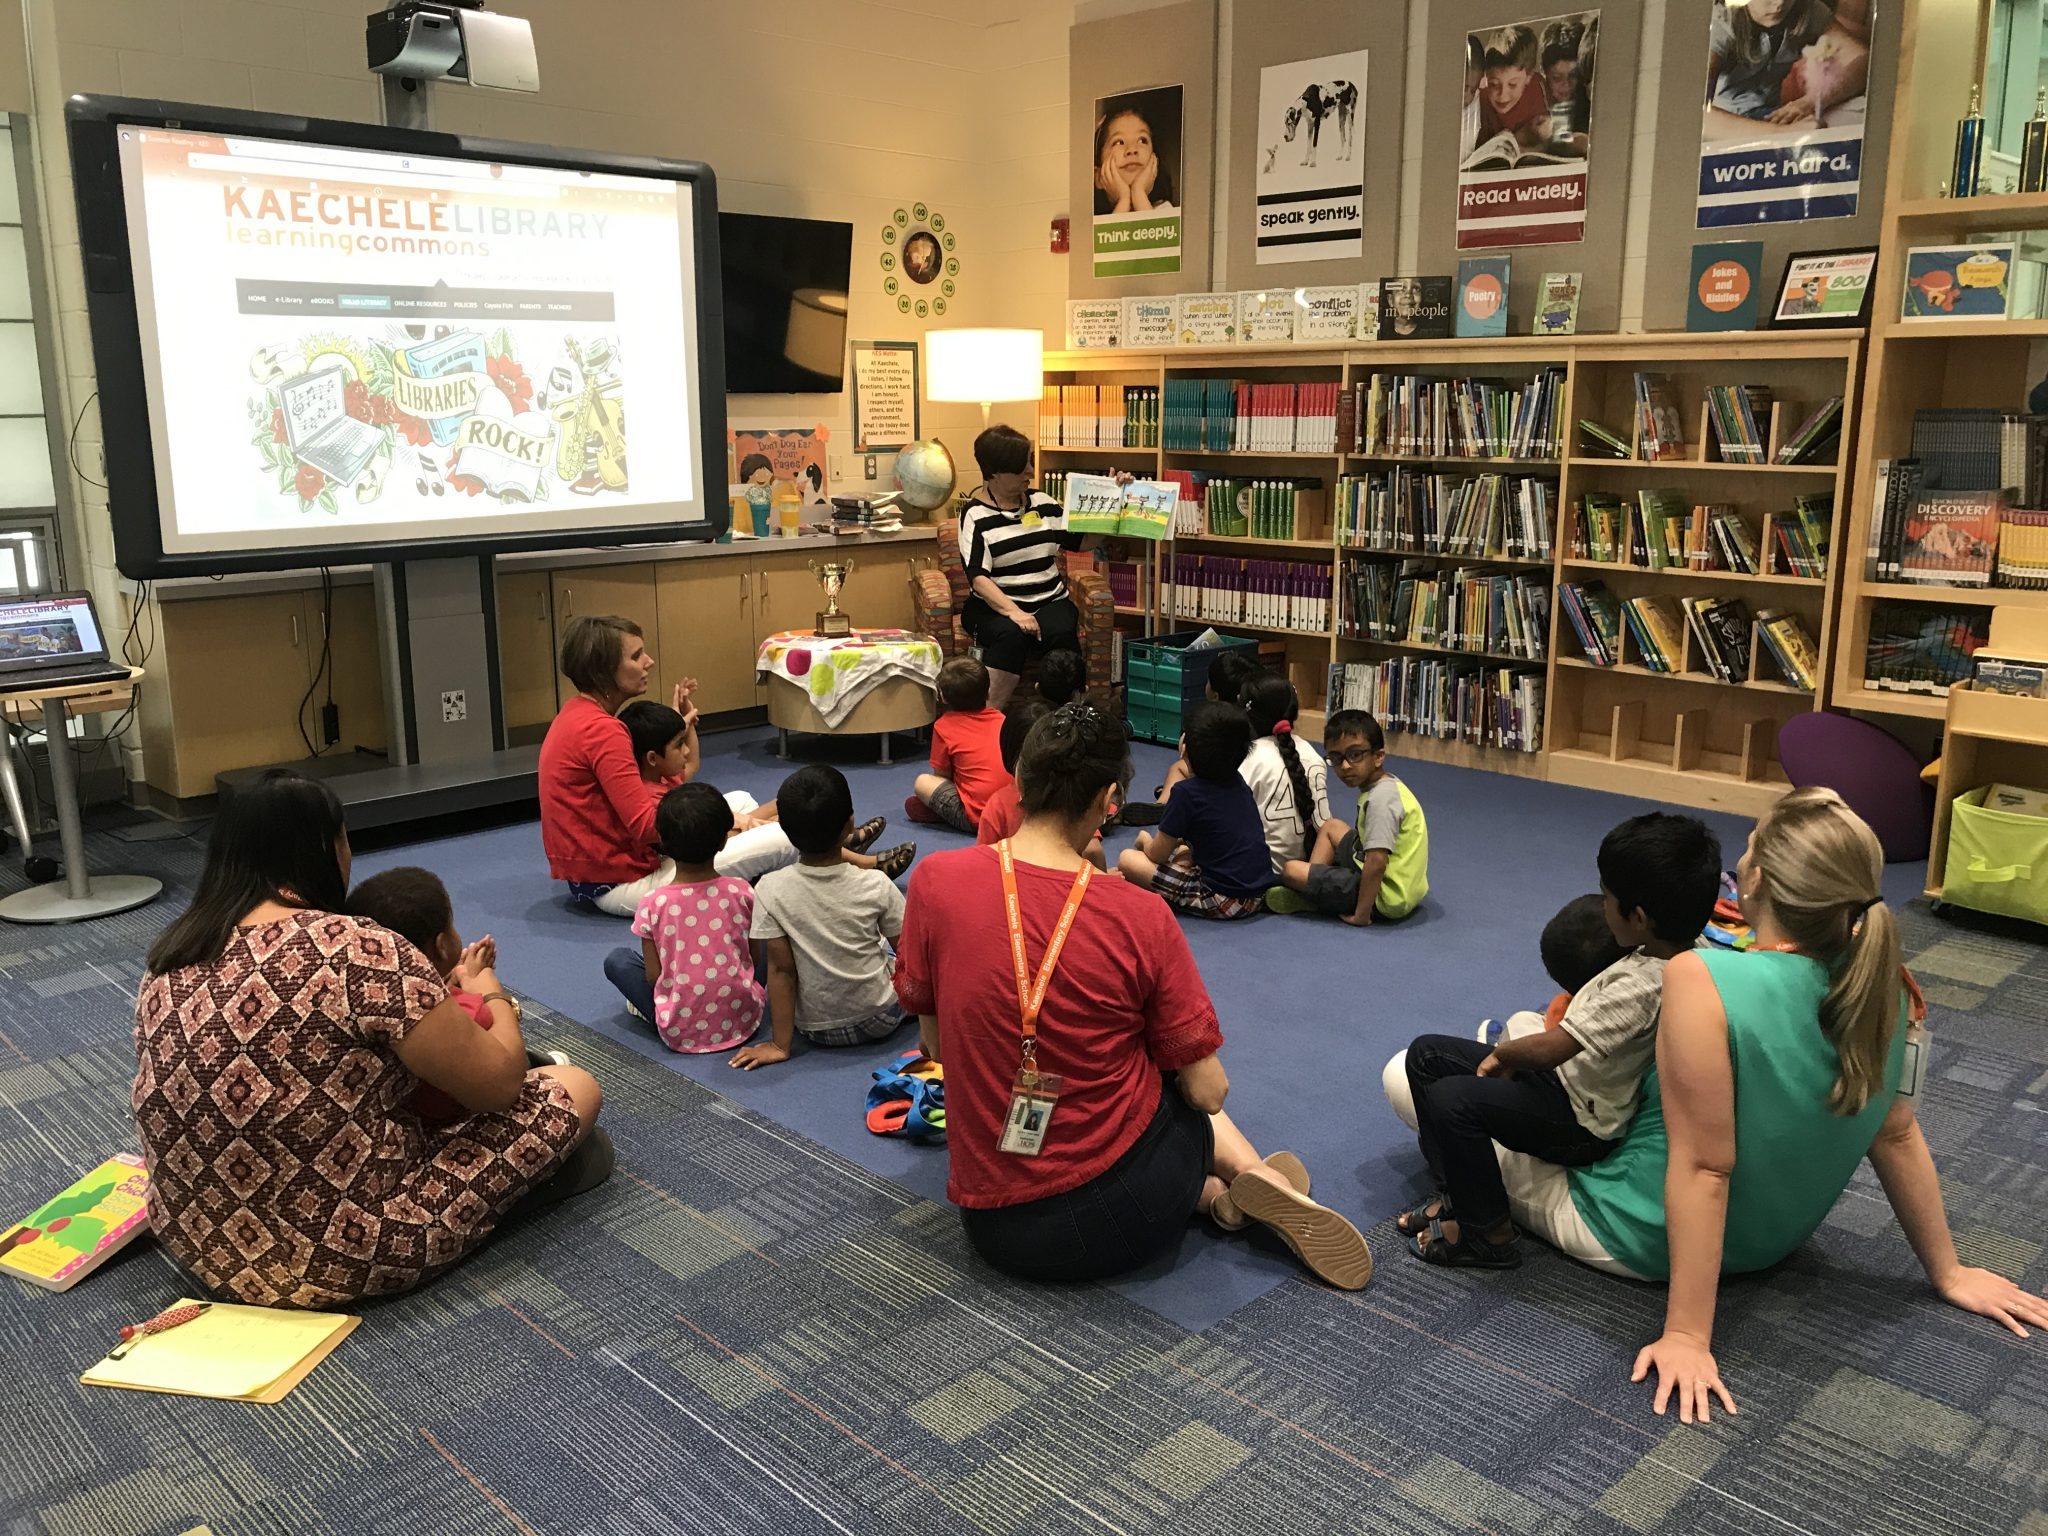 image of students listening to public librarian